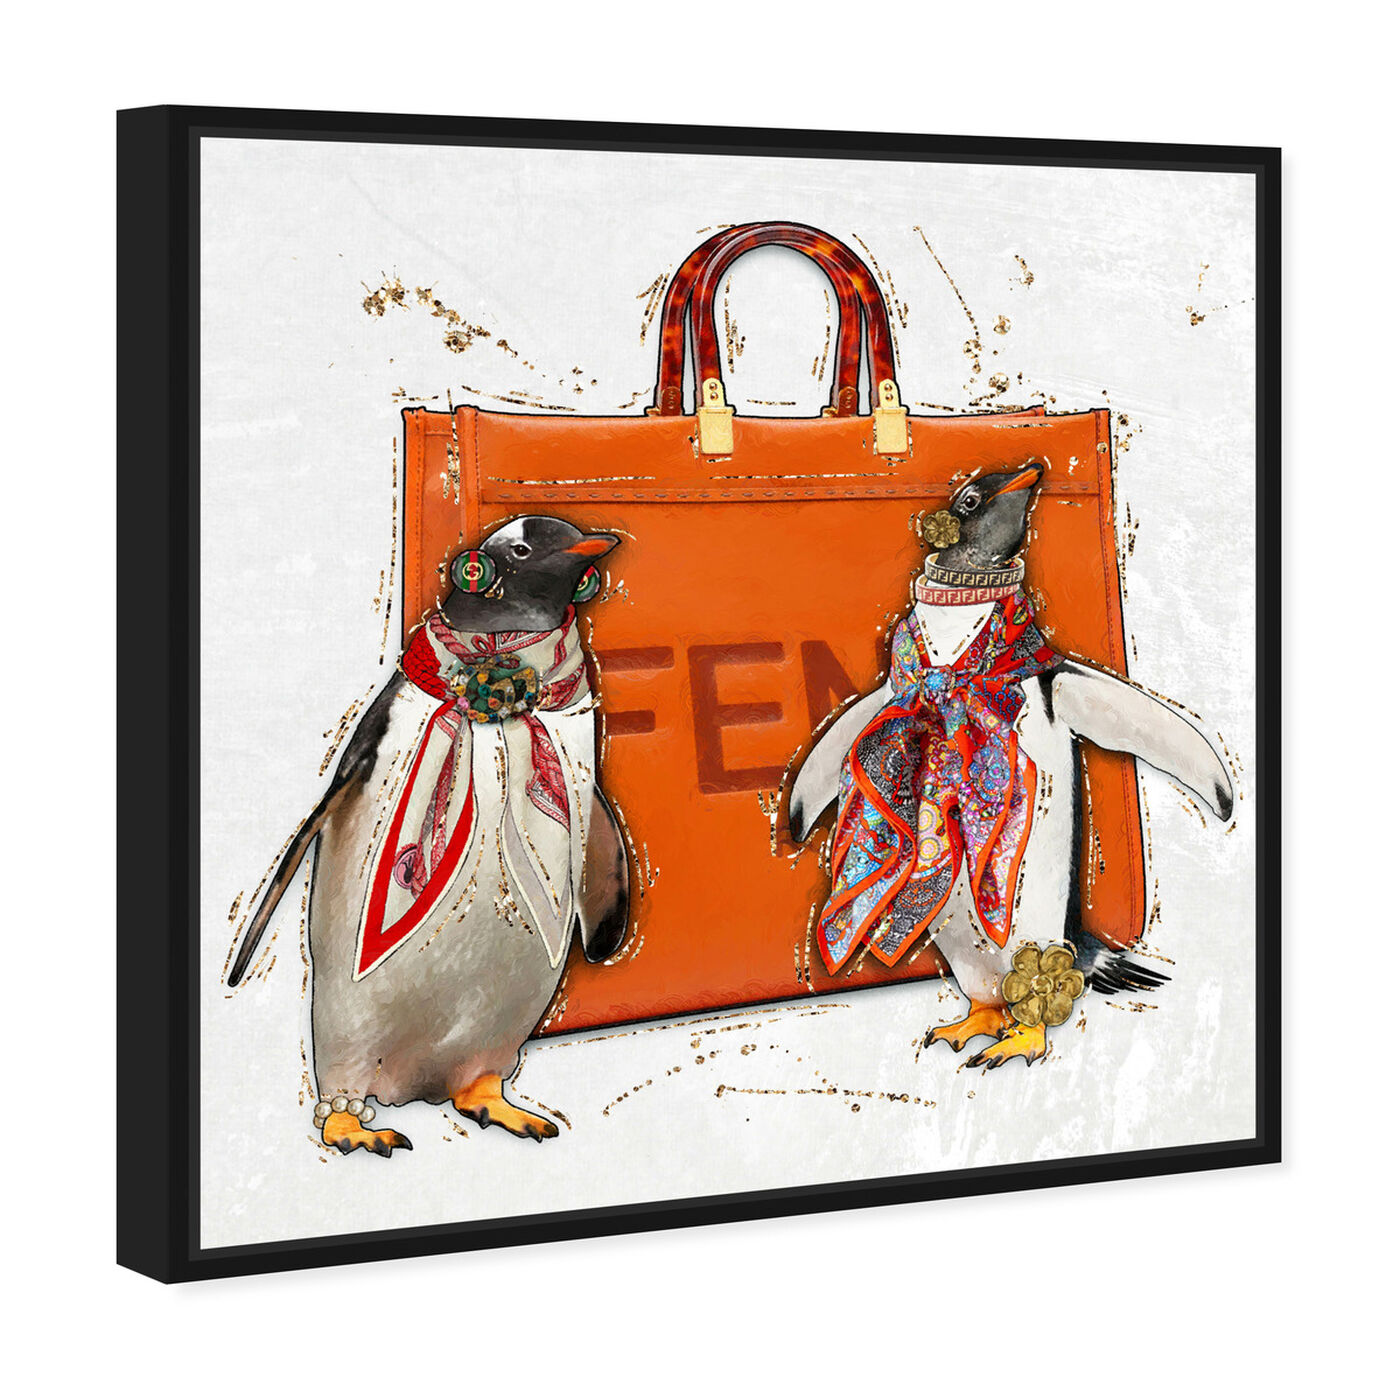 Angled view of No More Suits featuring animals and birds art.